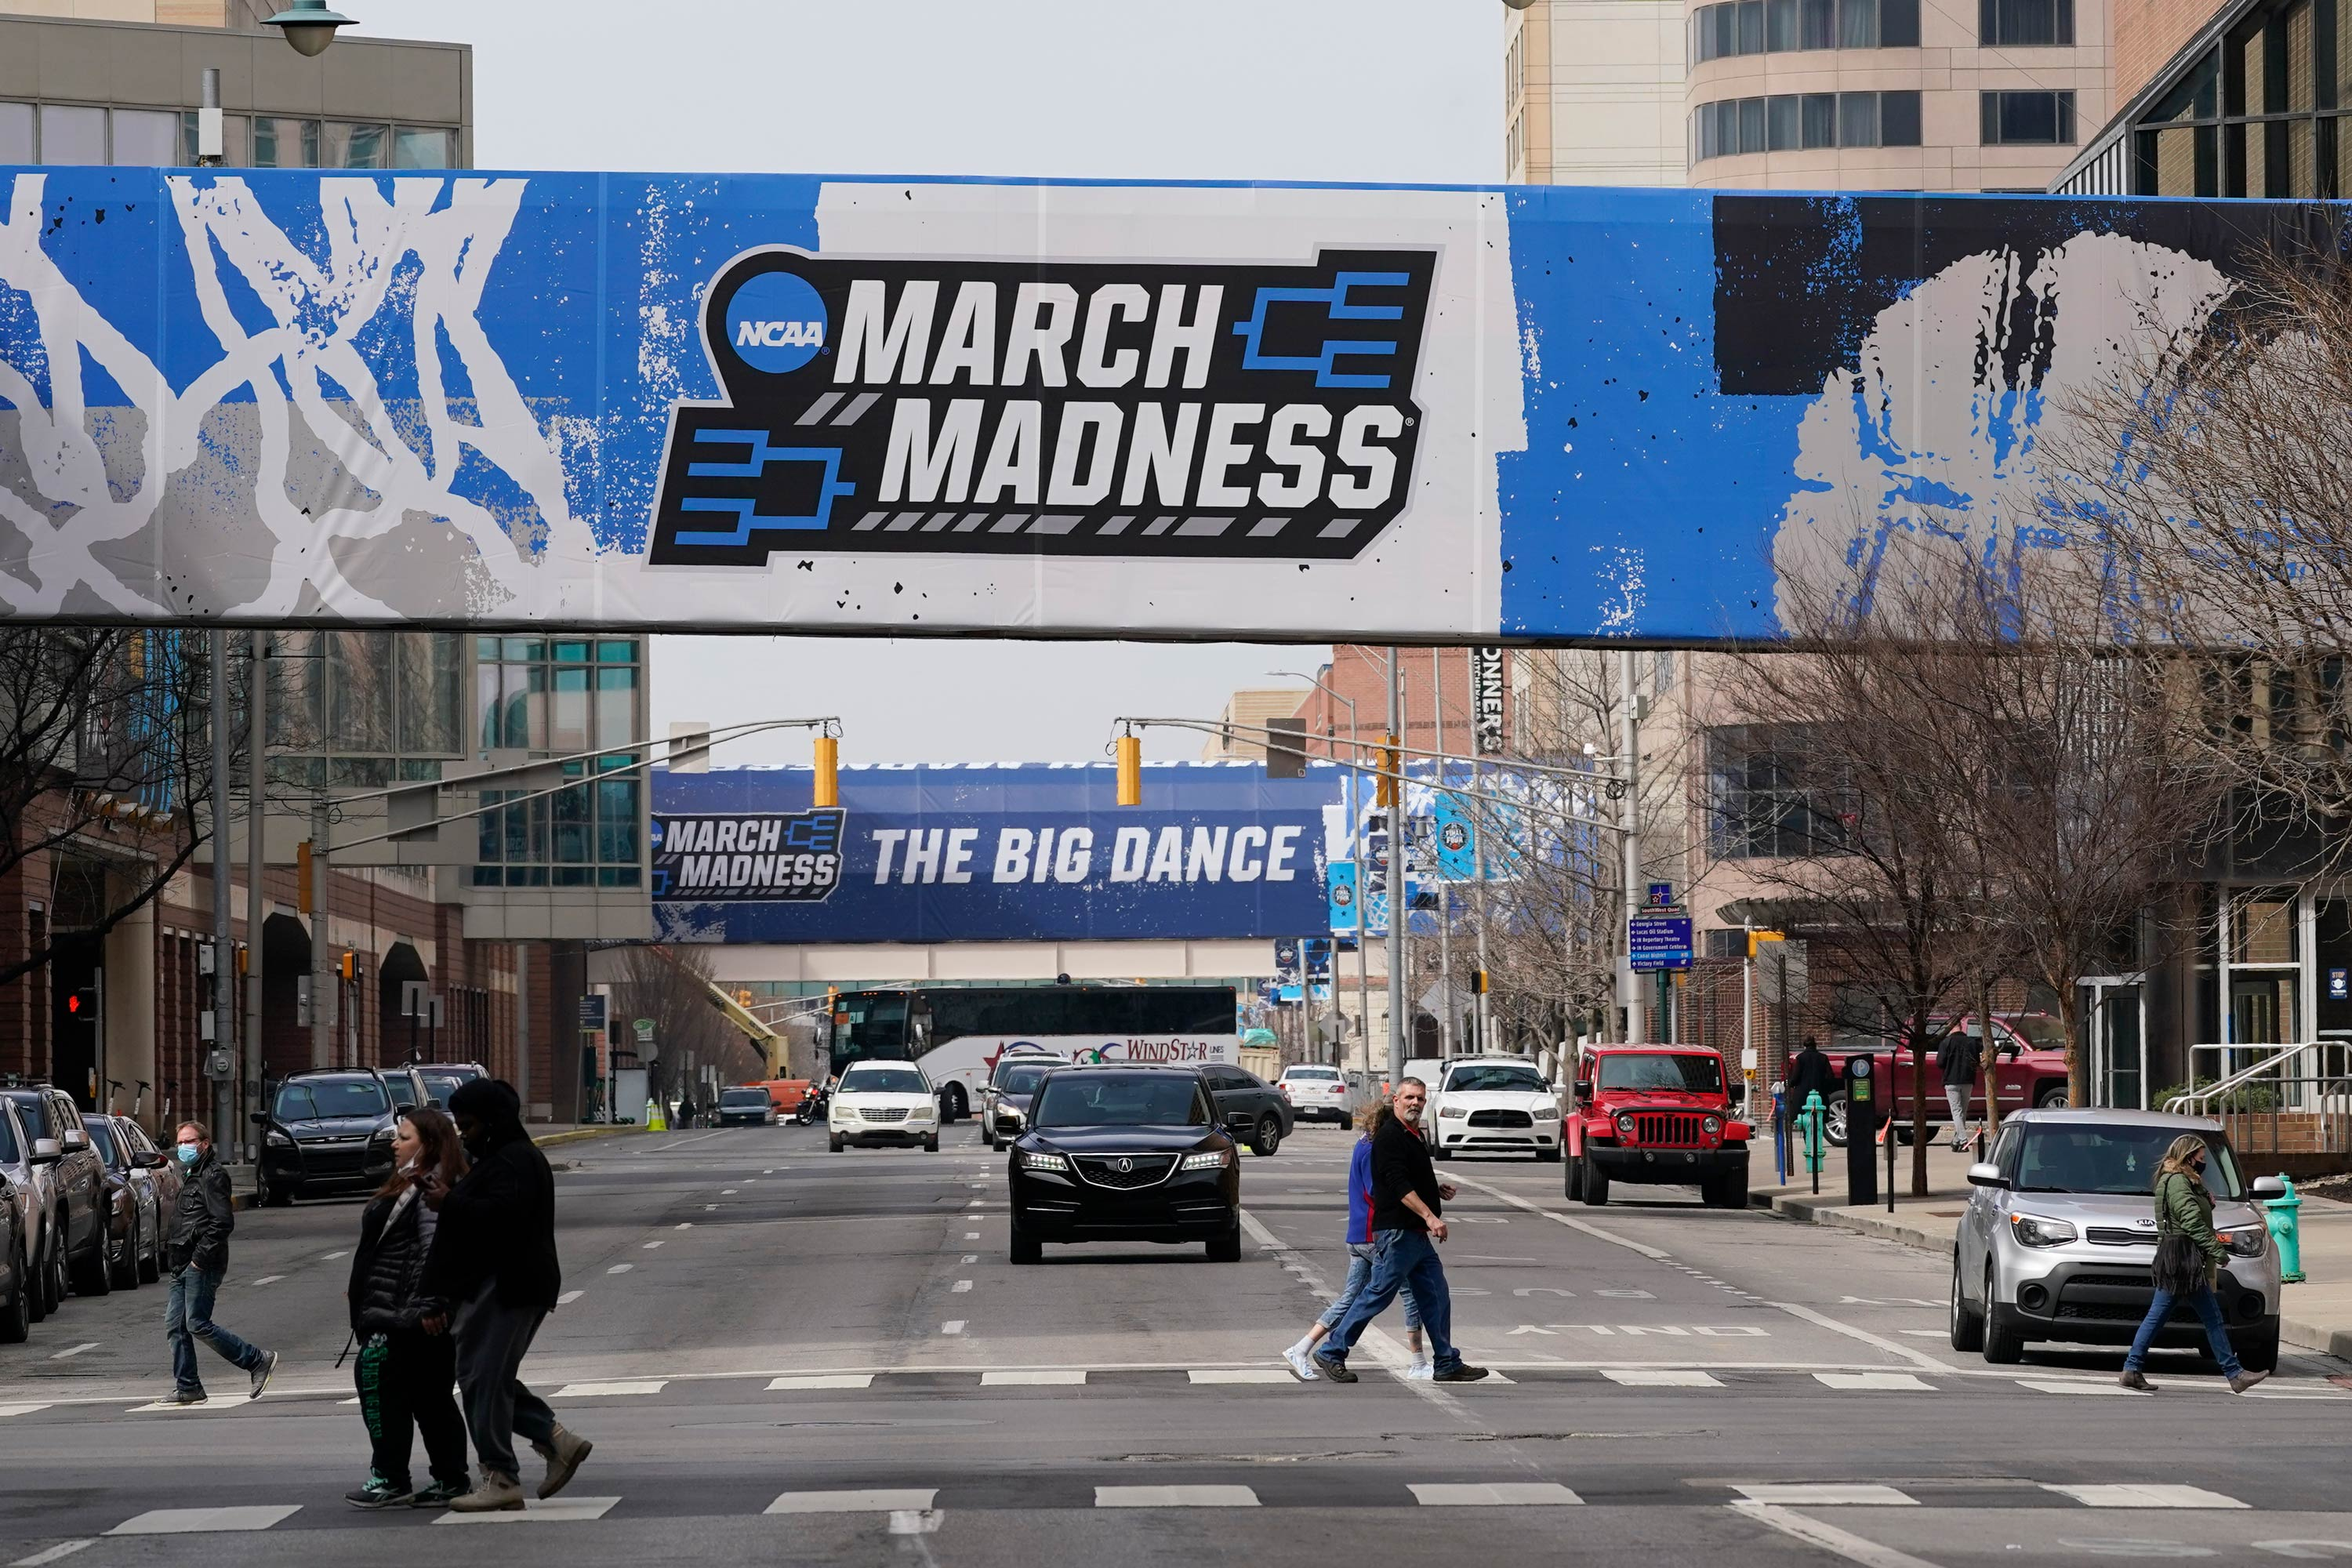 March Madness banners for the NCAA college basketball tournament cover crosswalks in downtown Indianapolis on March 17.